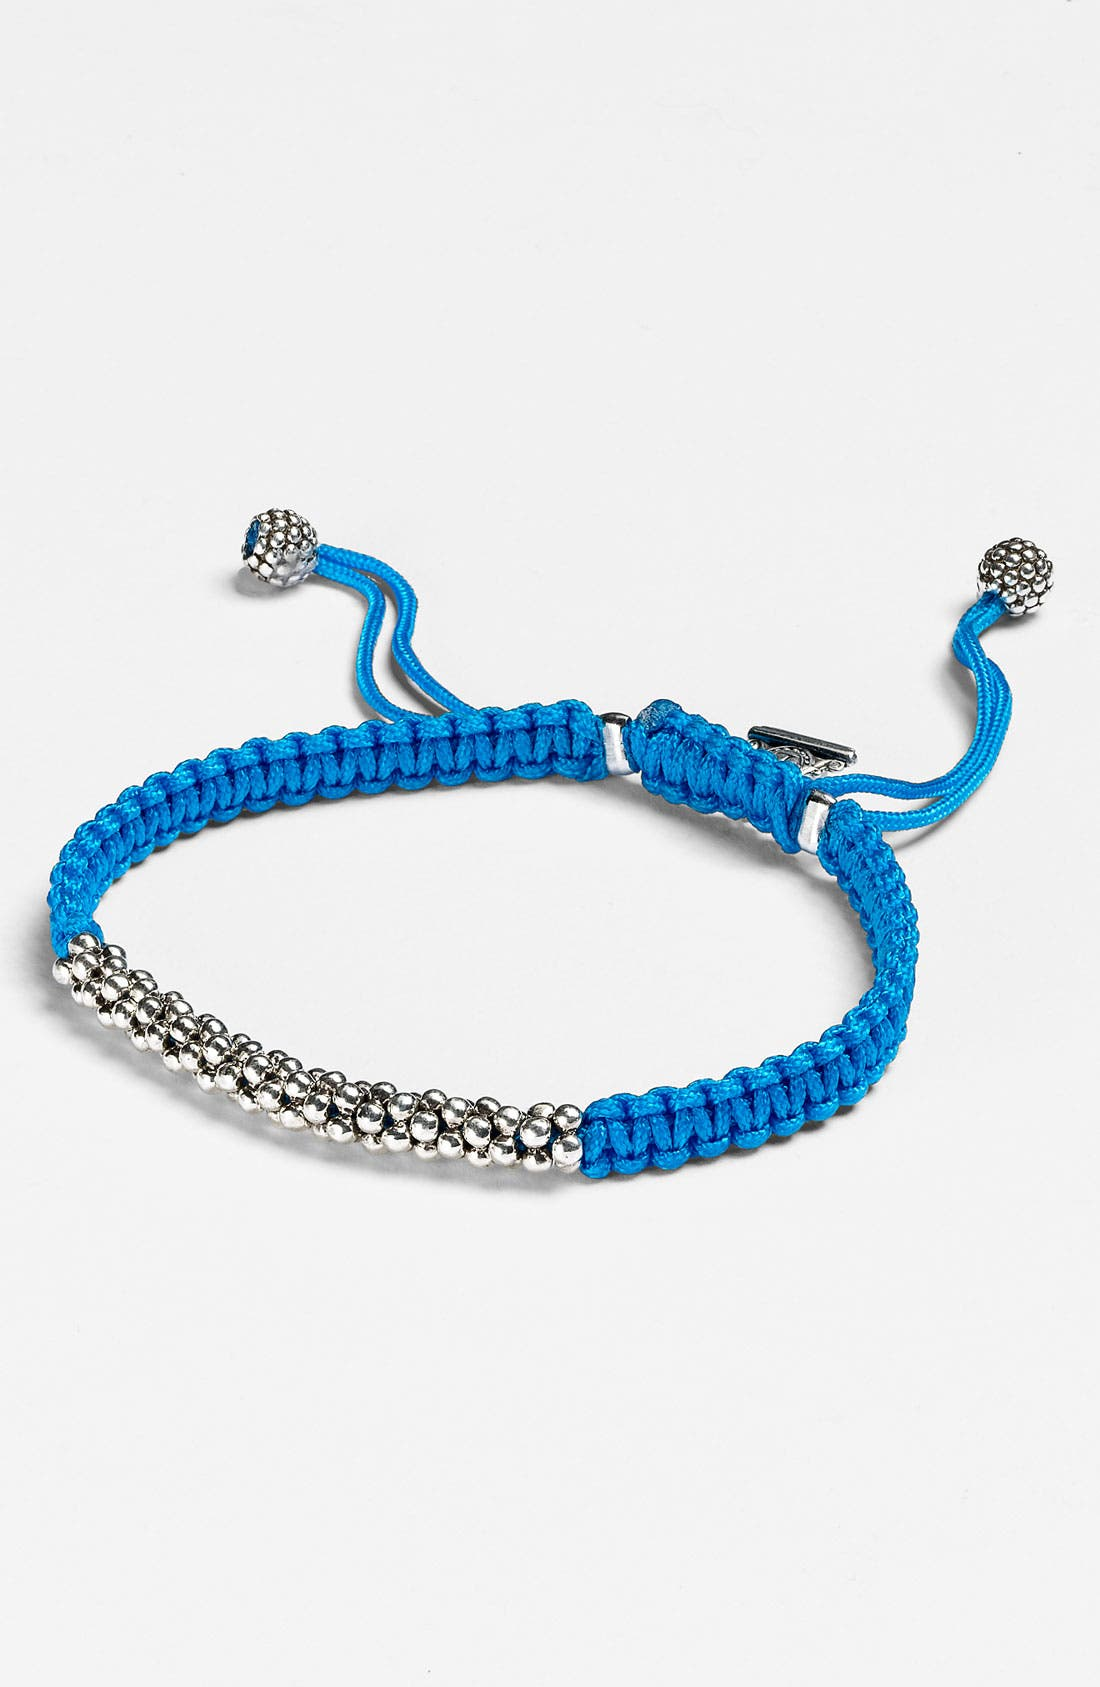 Alternate Image 1 Selected - LAGOS Caviar Macramé Bracelet